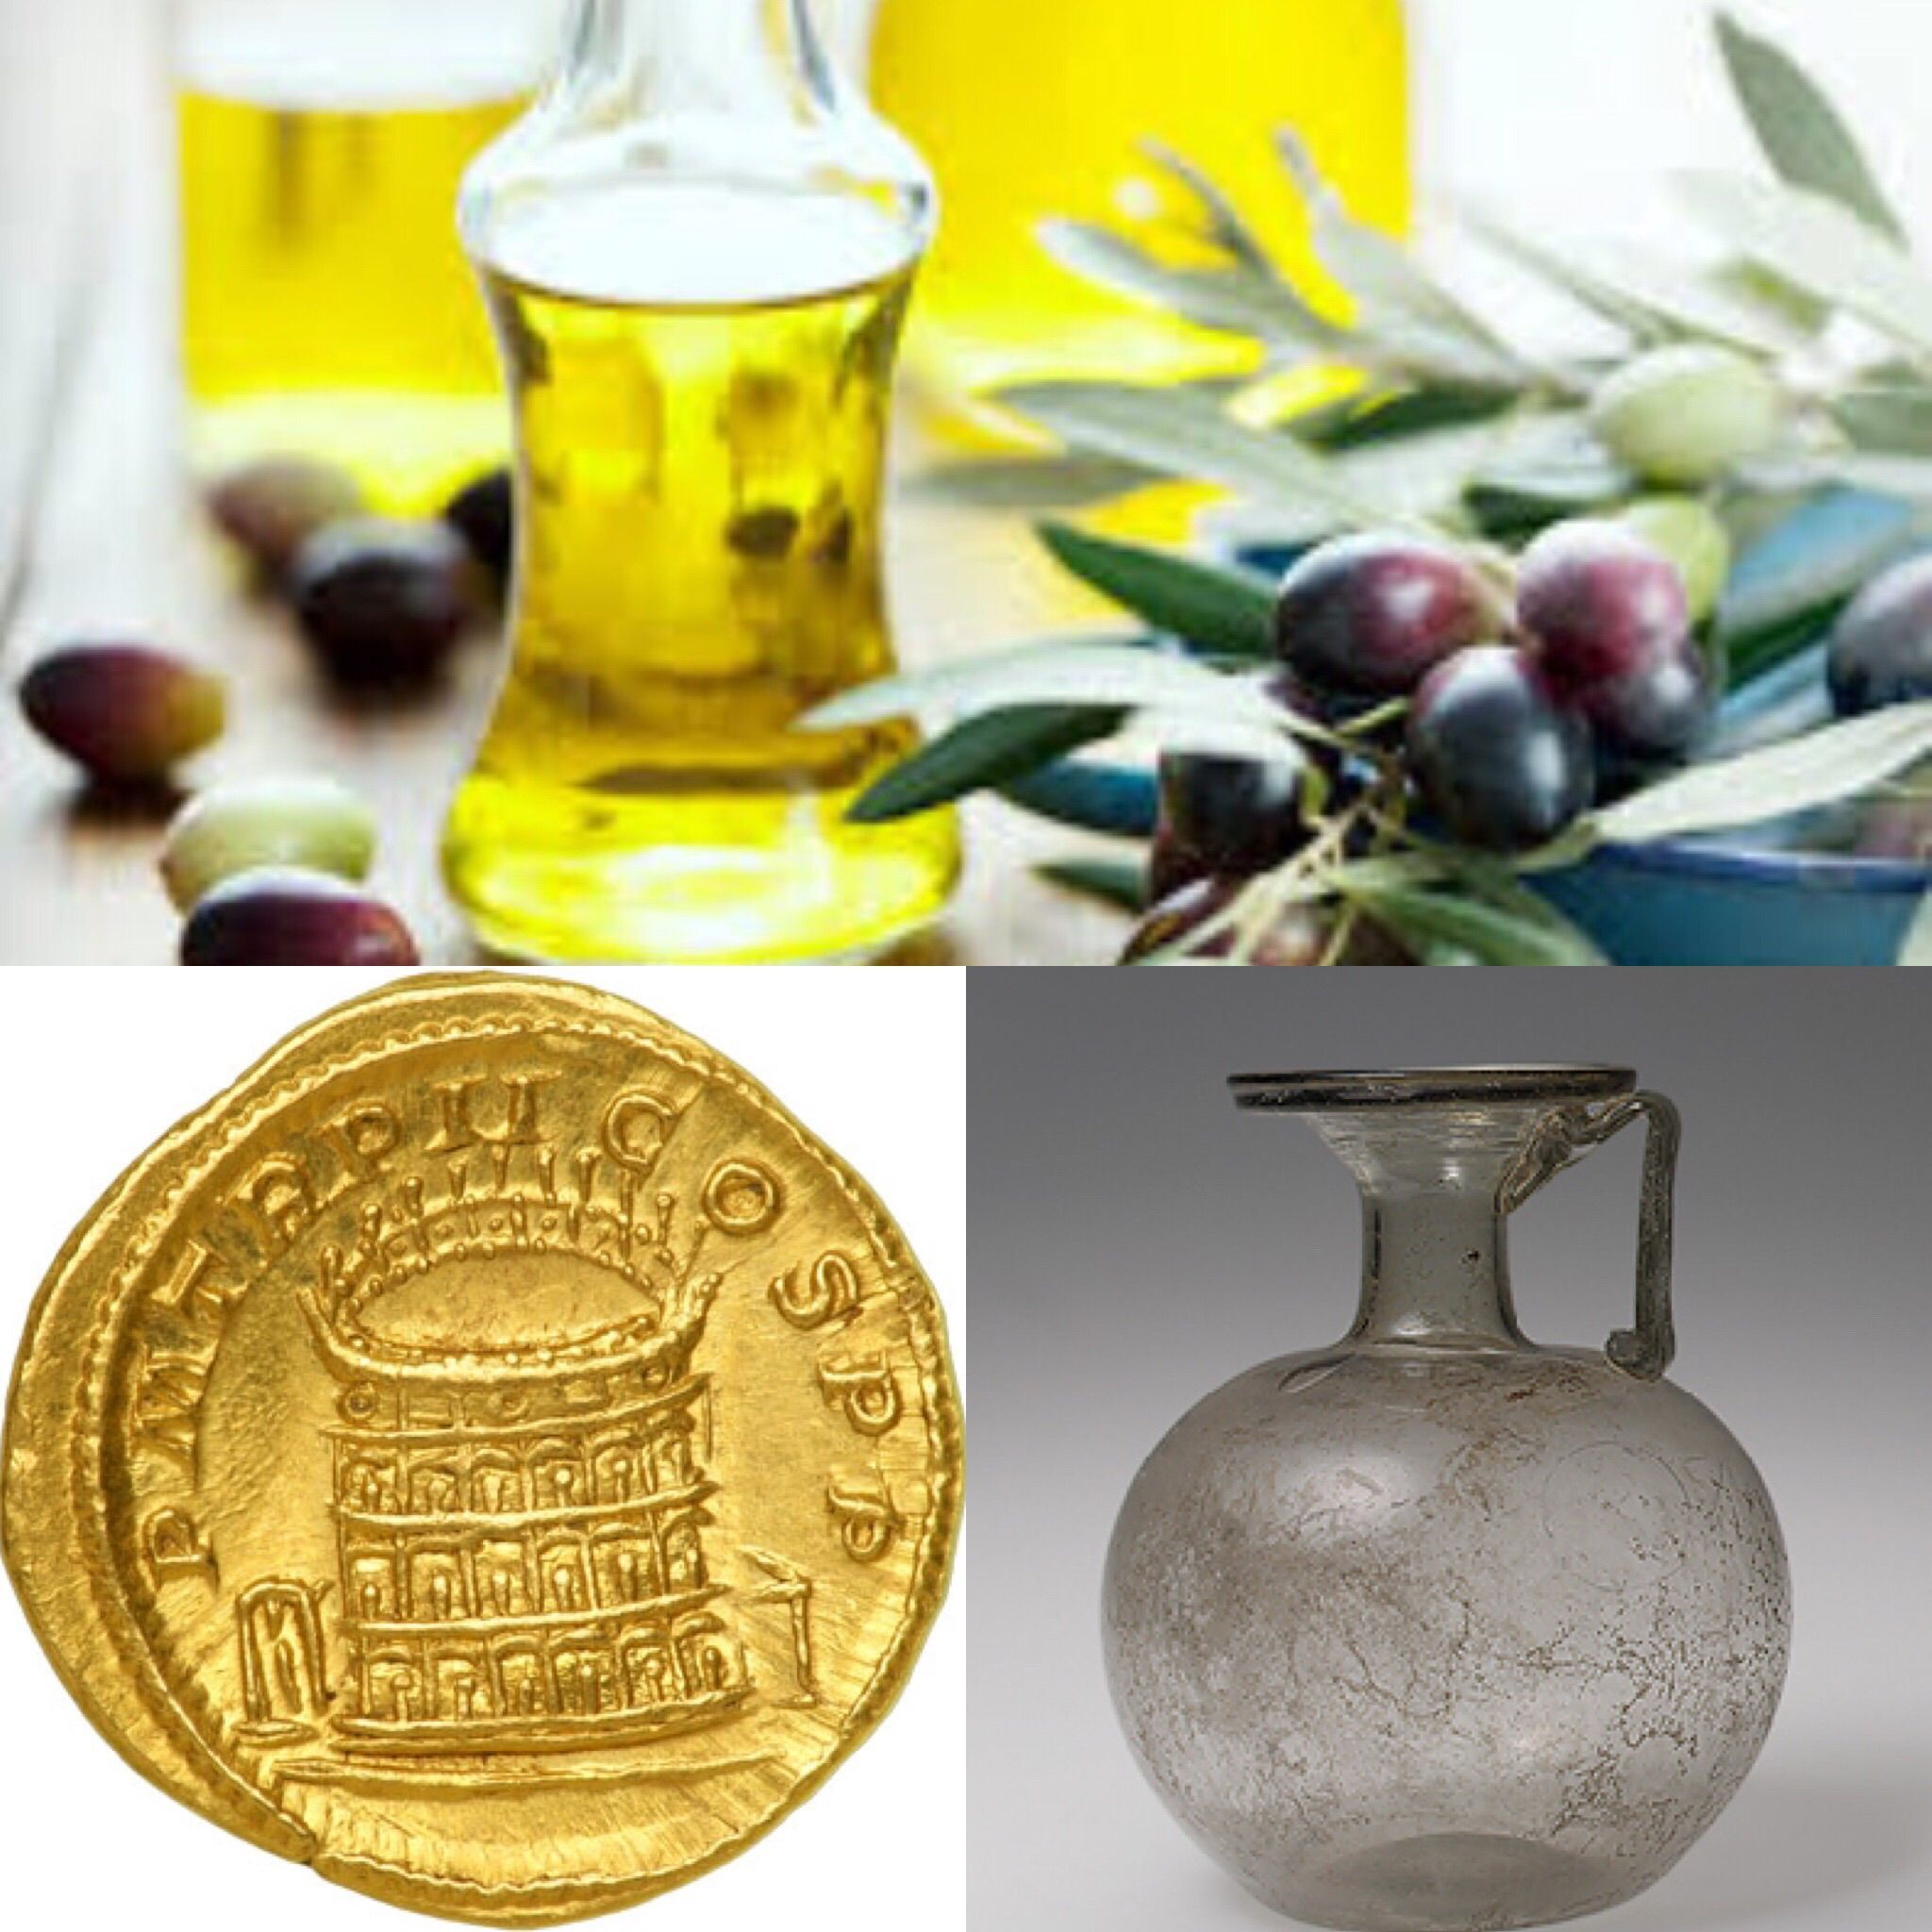 These Are Items From Rome Traded Along The Silk Road. At